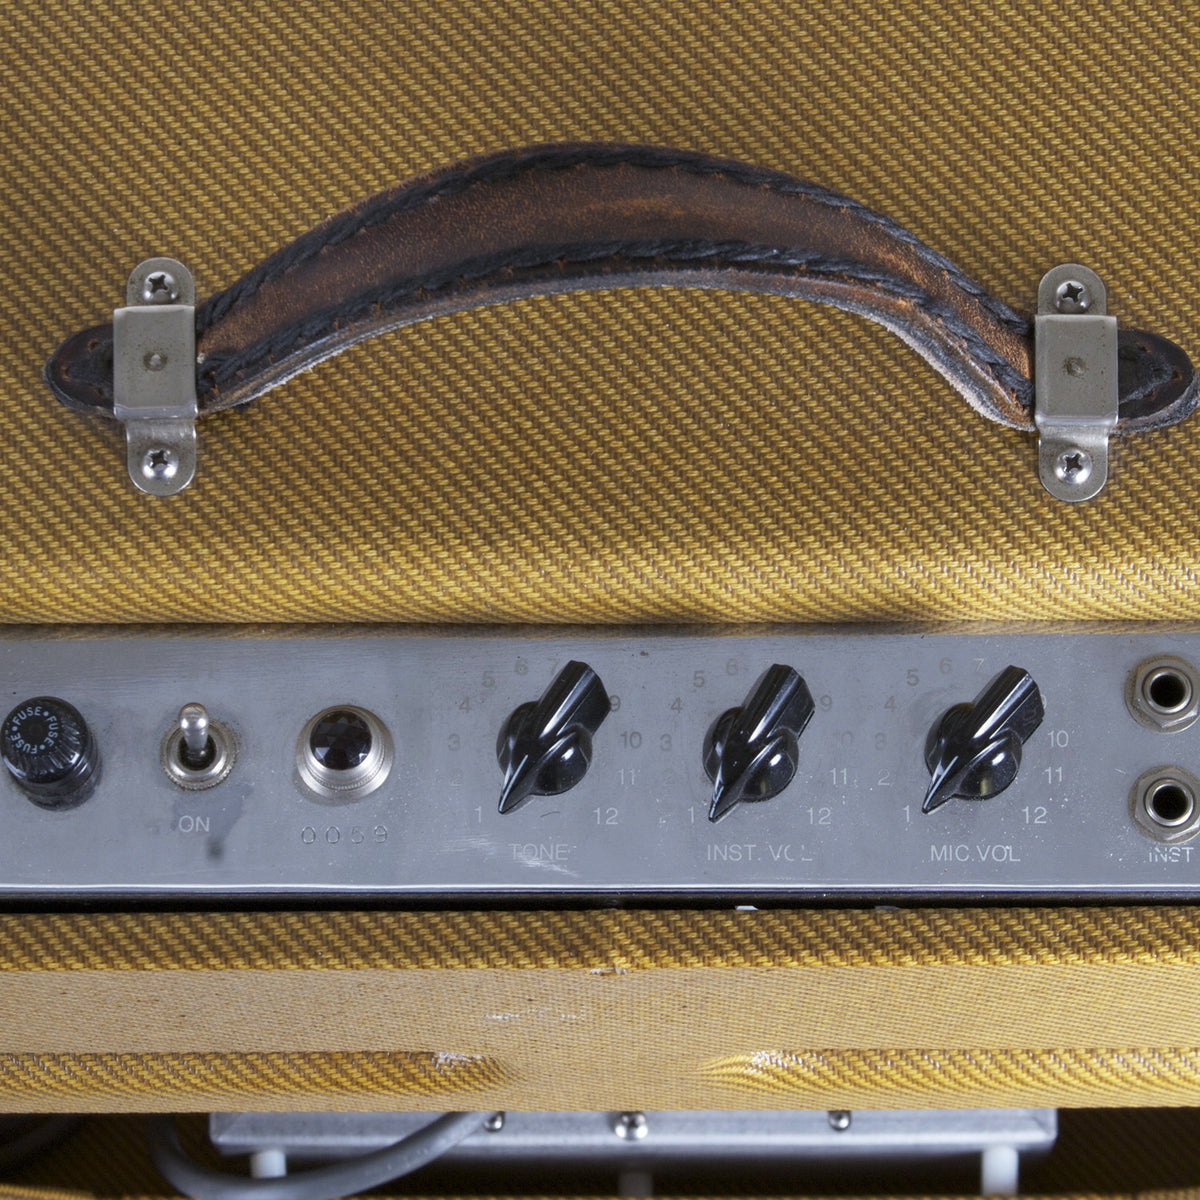 92/94 Kendrick Tweed Amp Model 2112TC - Garrett Park Guitars  - 6